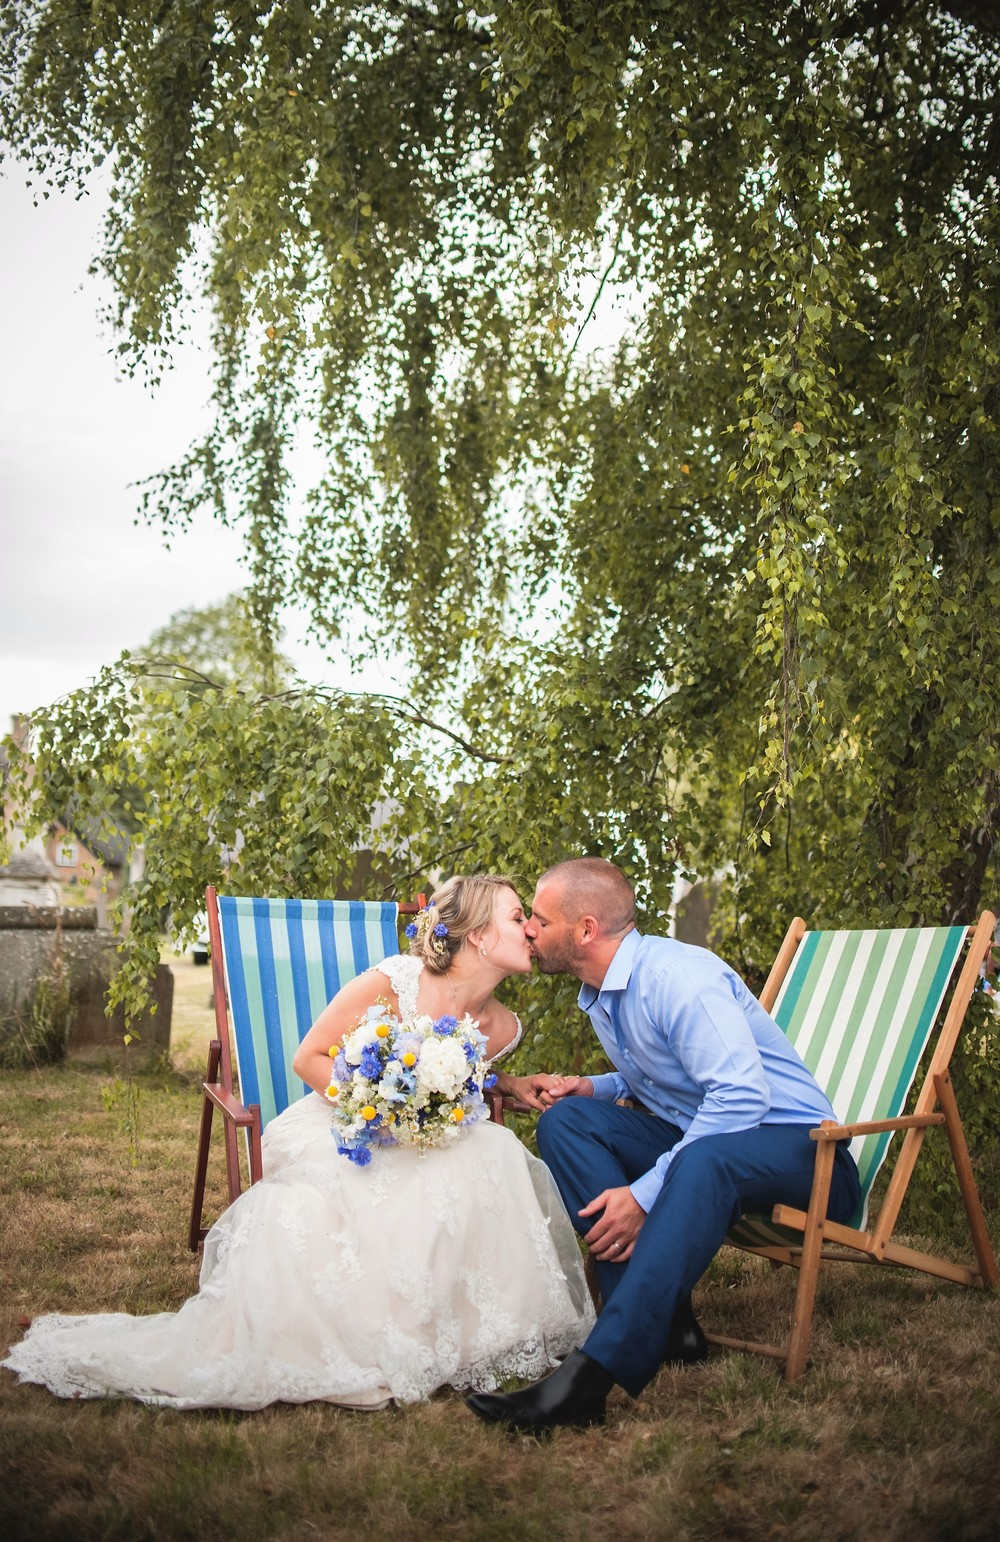 weddings - deckchairs.jpg